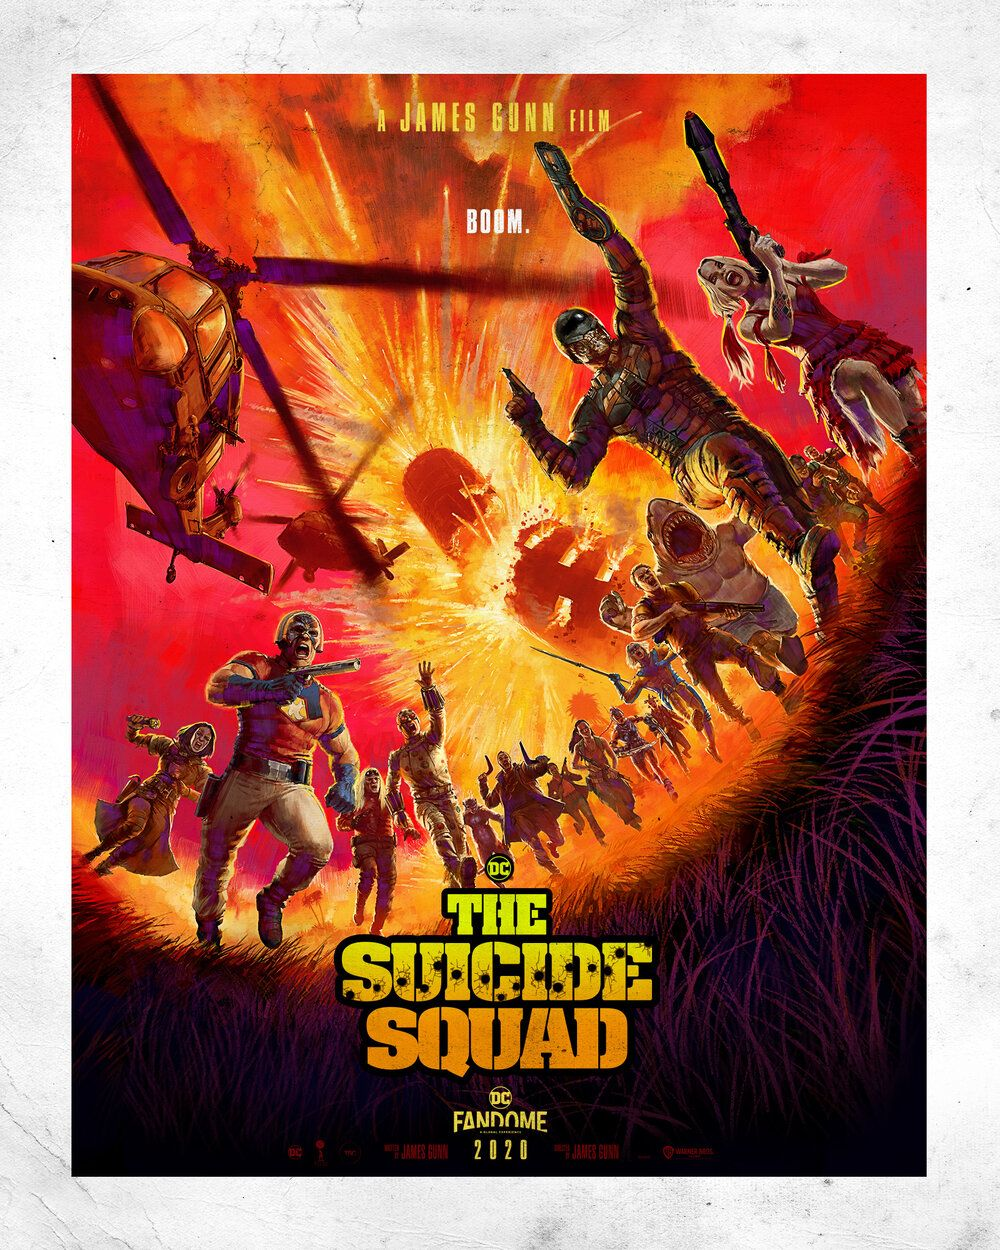 Two Cool Posters Shared For James Gunn's THE SUICIDE SQUAD!